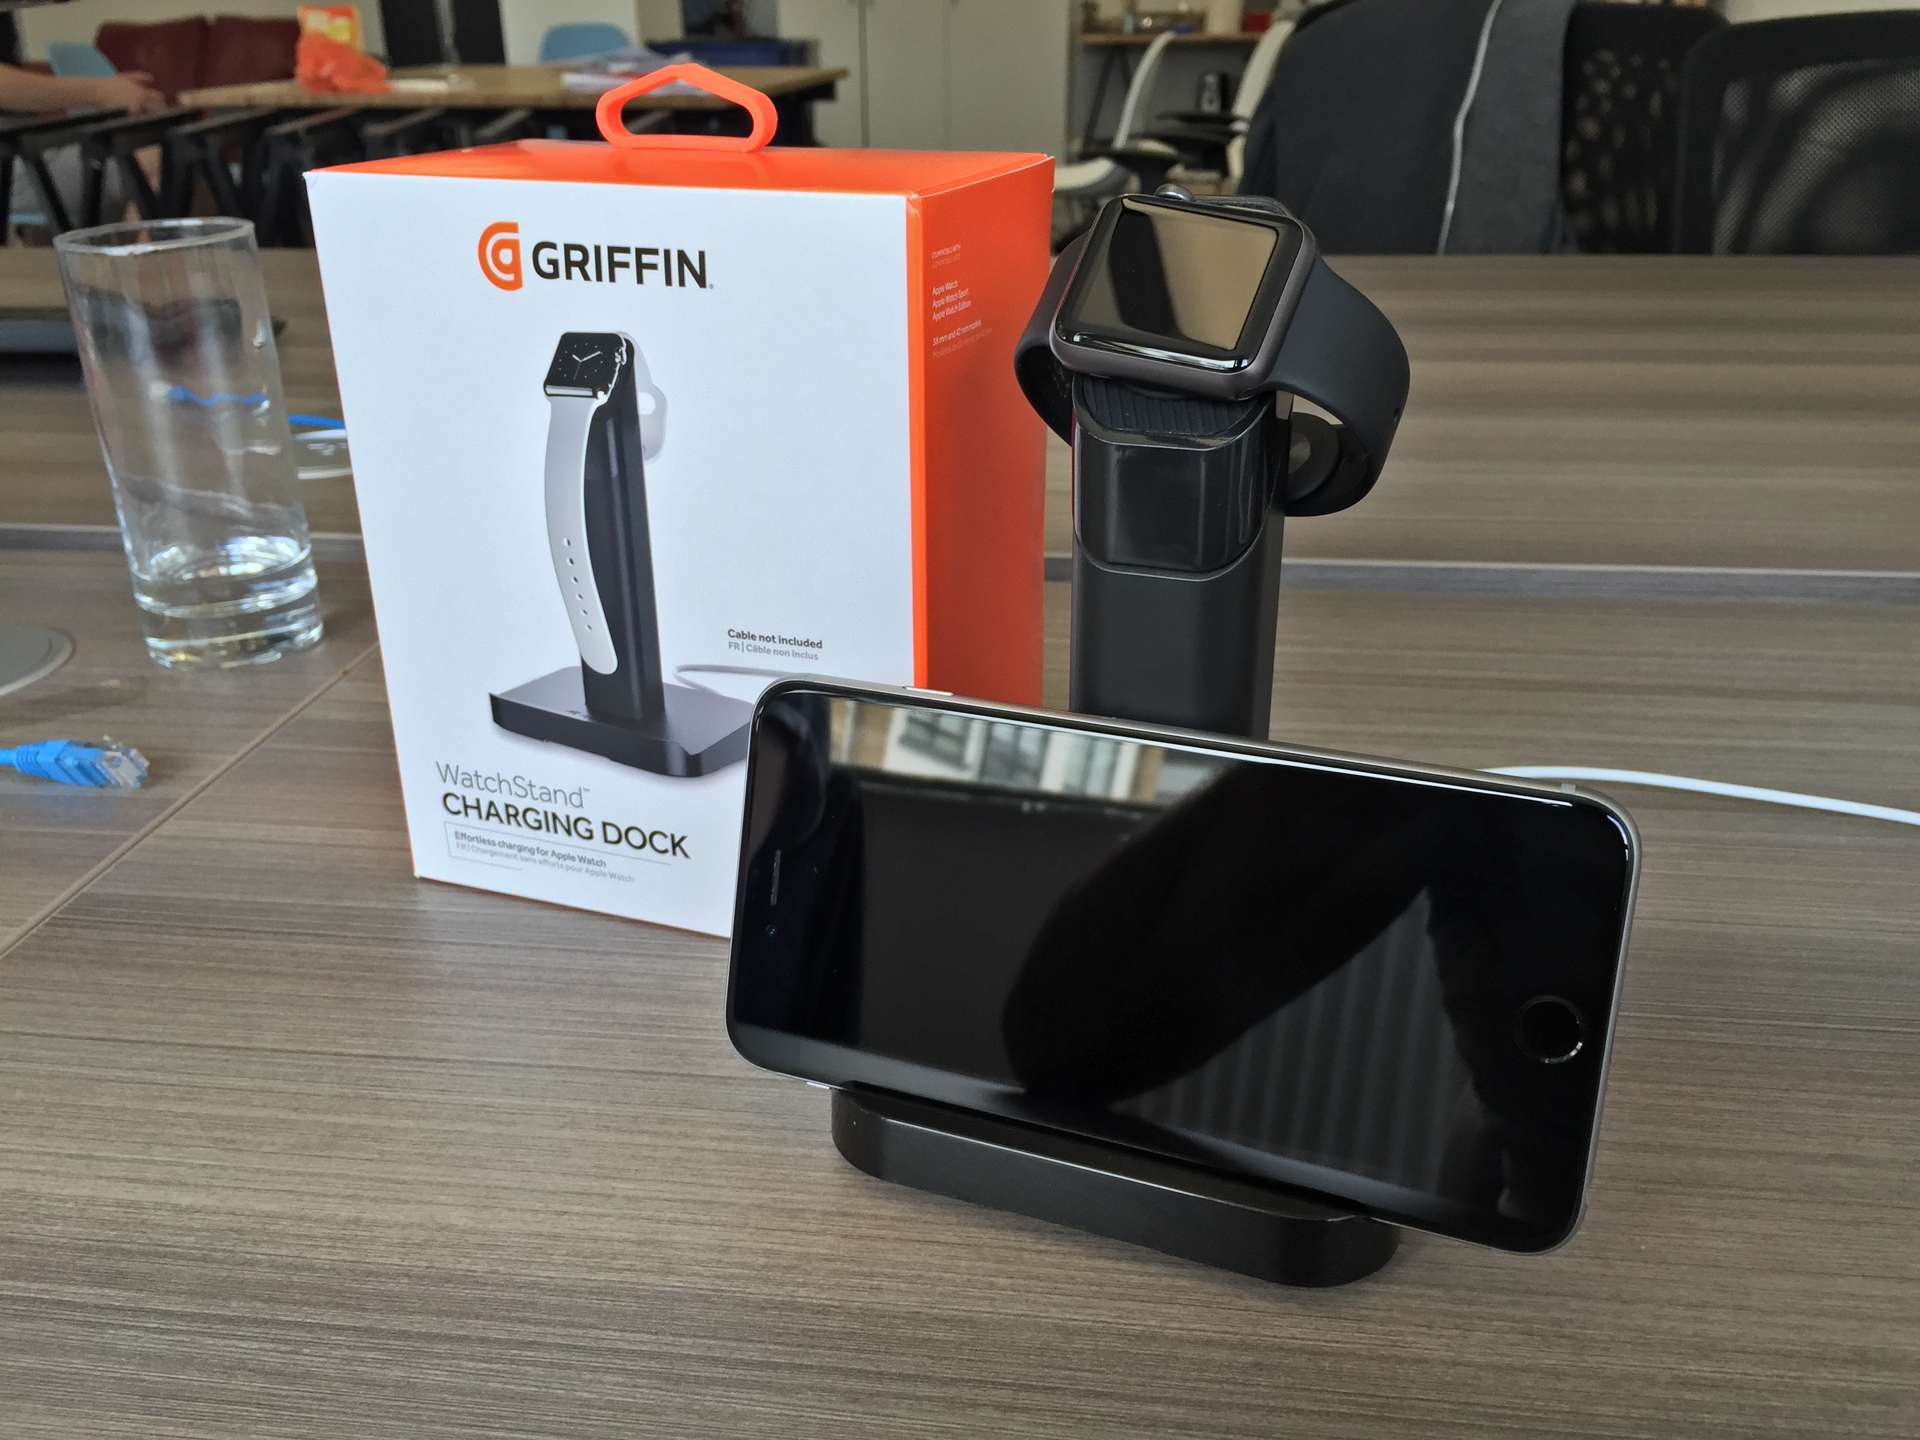 The Griffin WatchStand all set up and ready to go